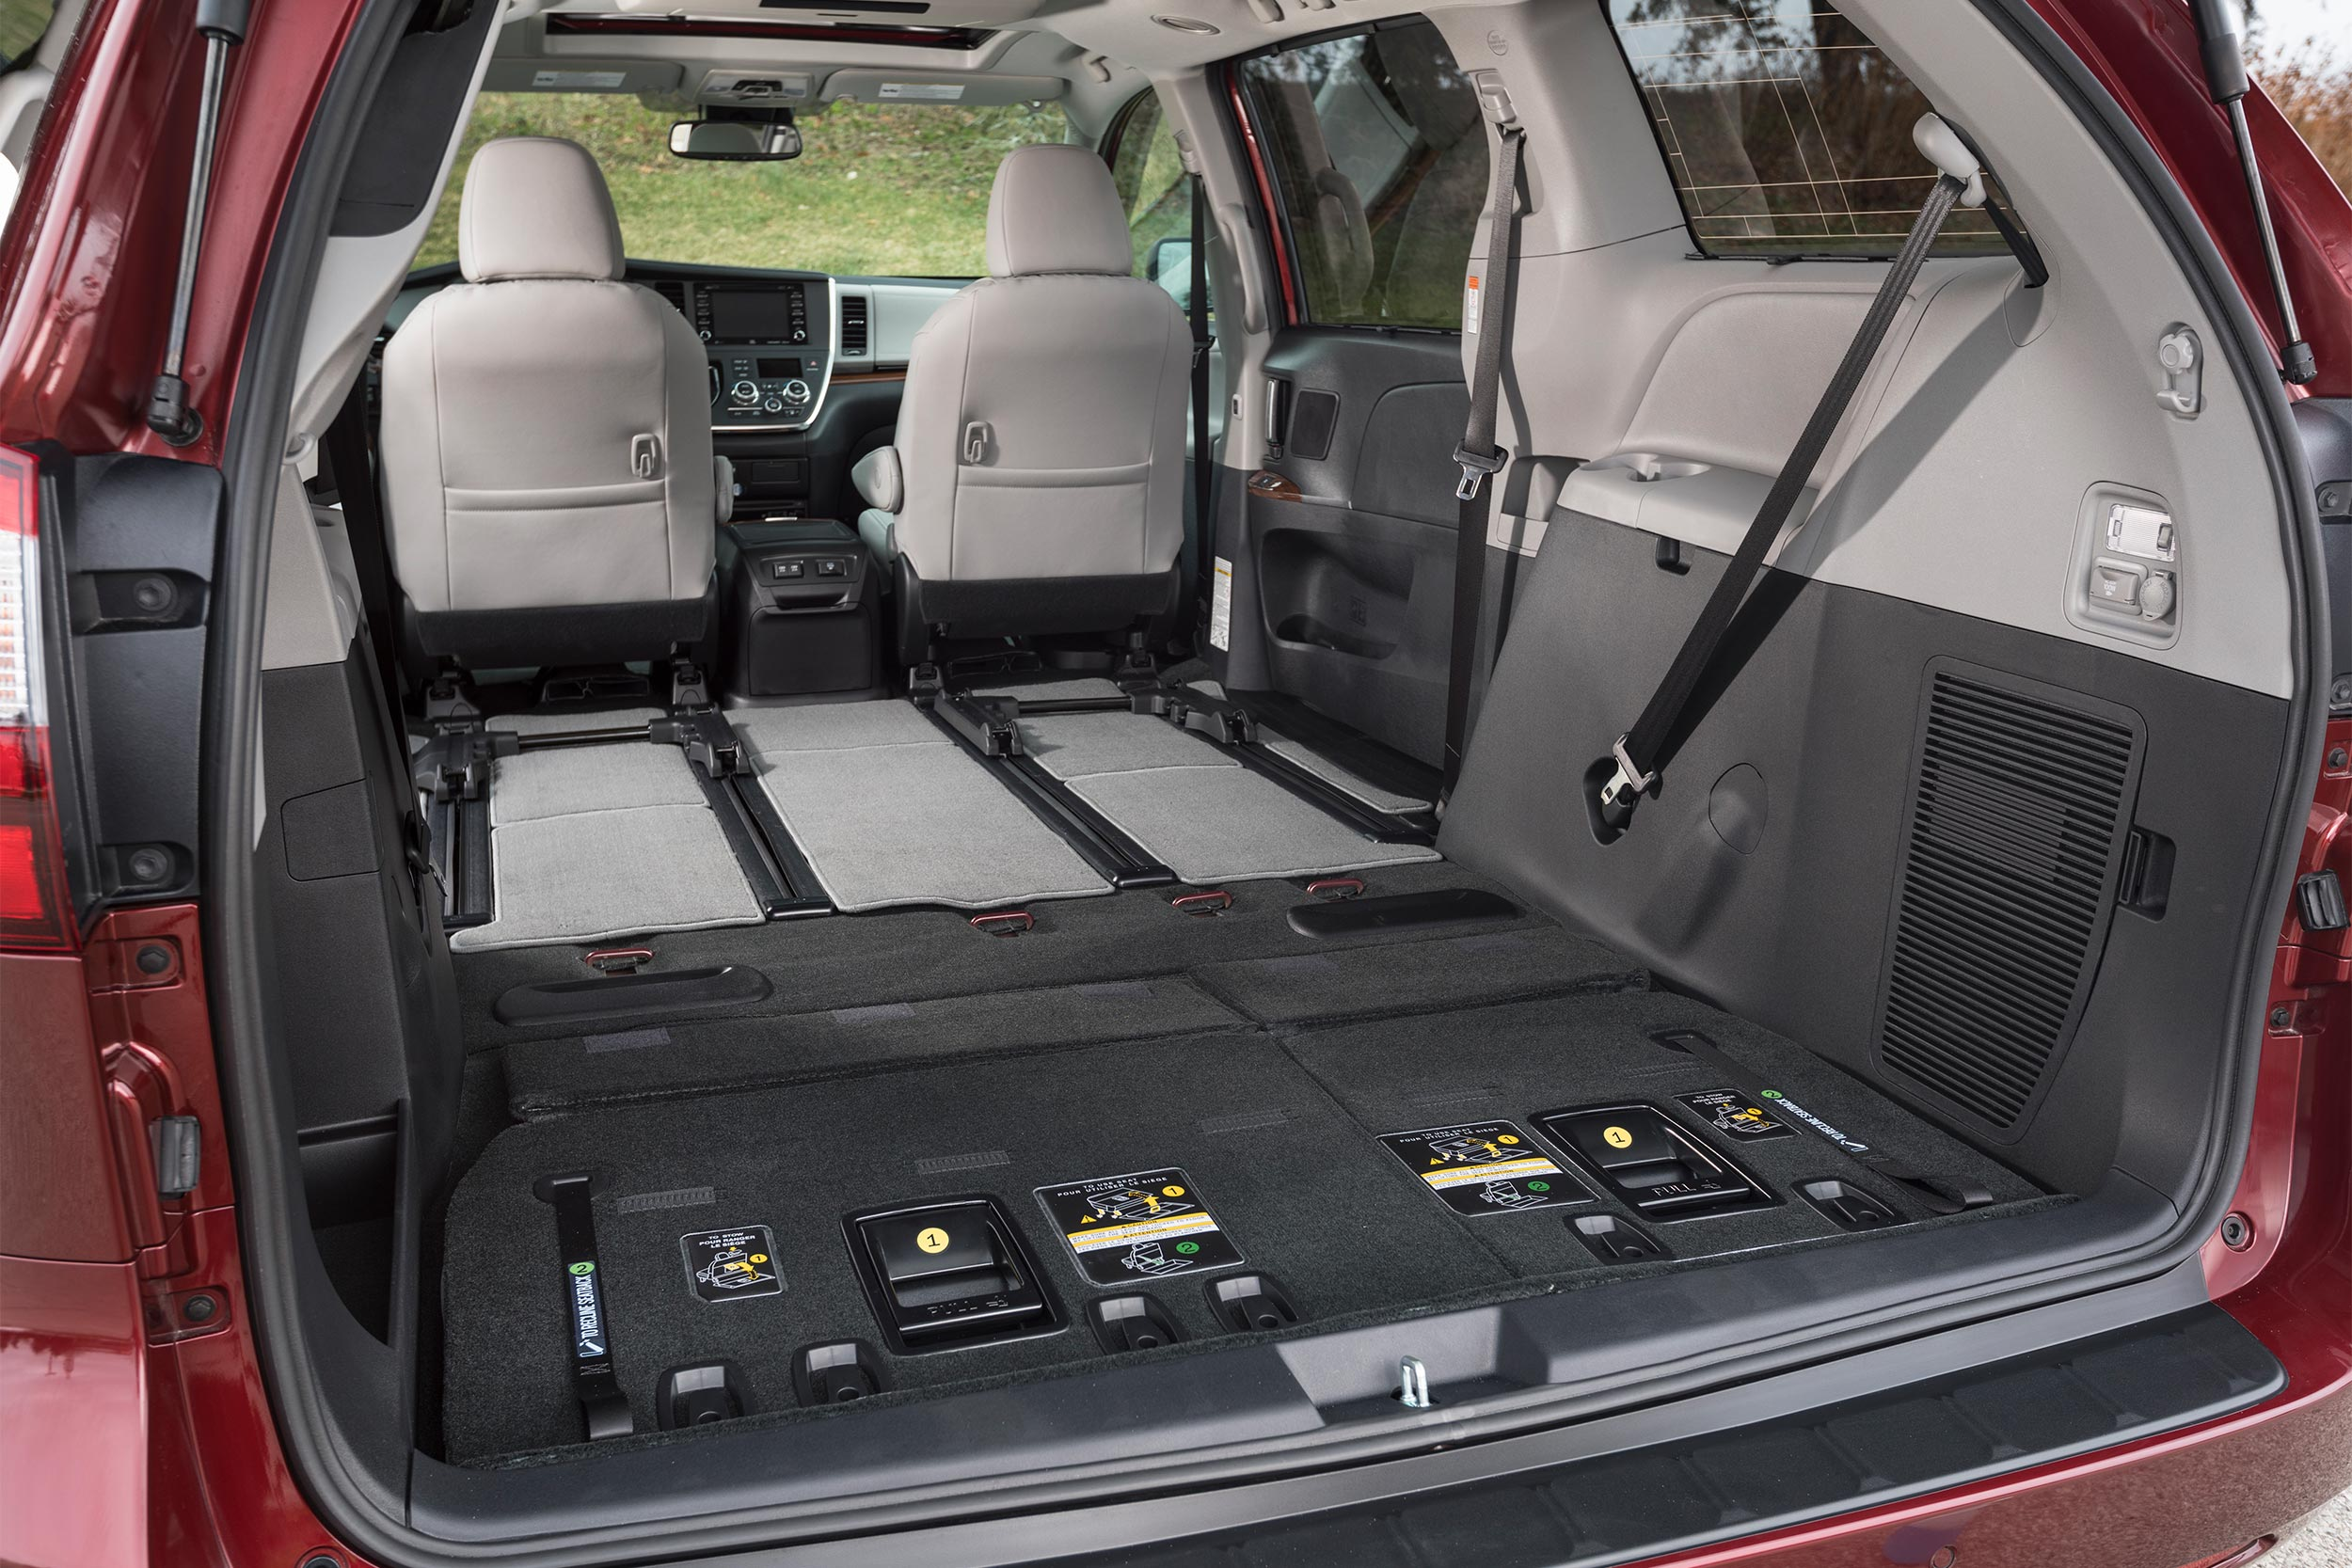 toyota sienna awd limited premium is this the one rocky mountain review by dan poler toyota sienna awd limited premium is